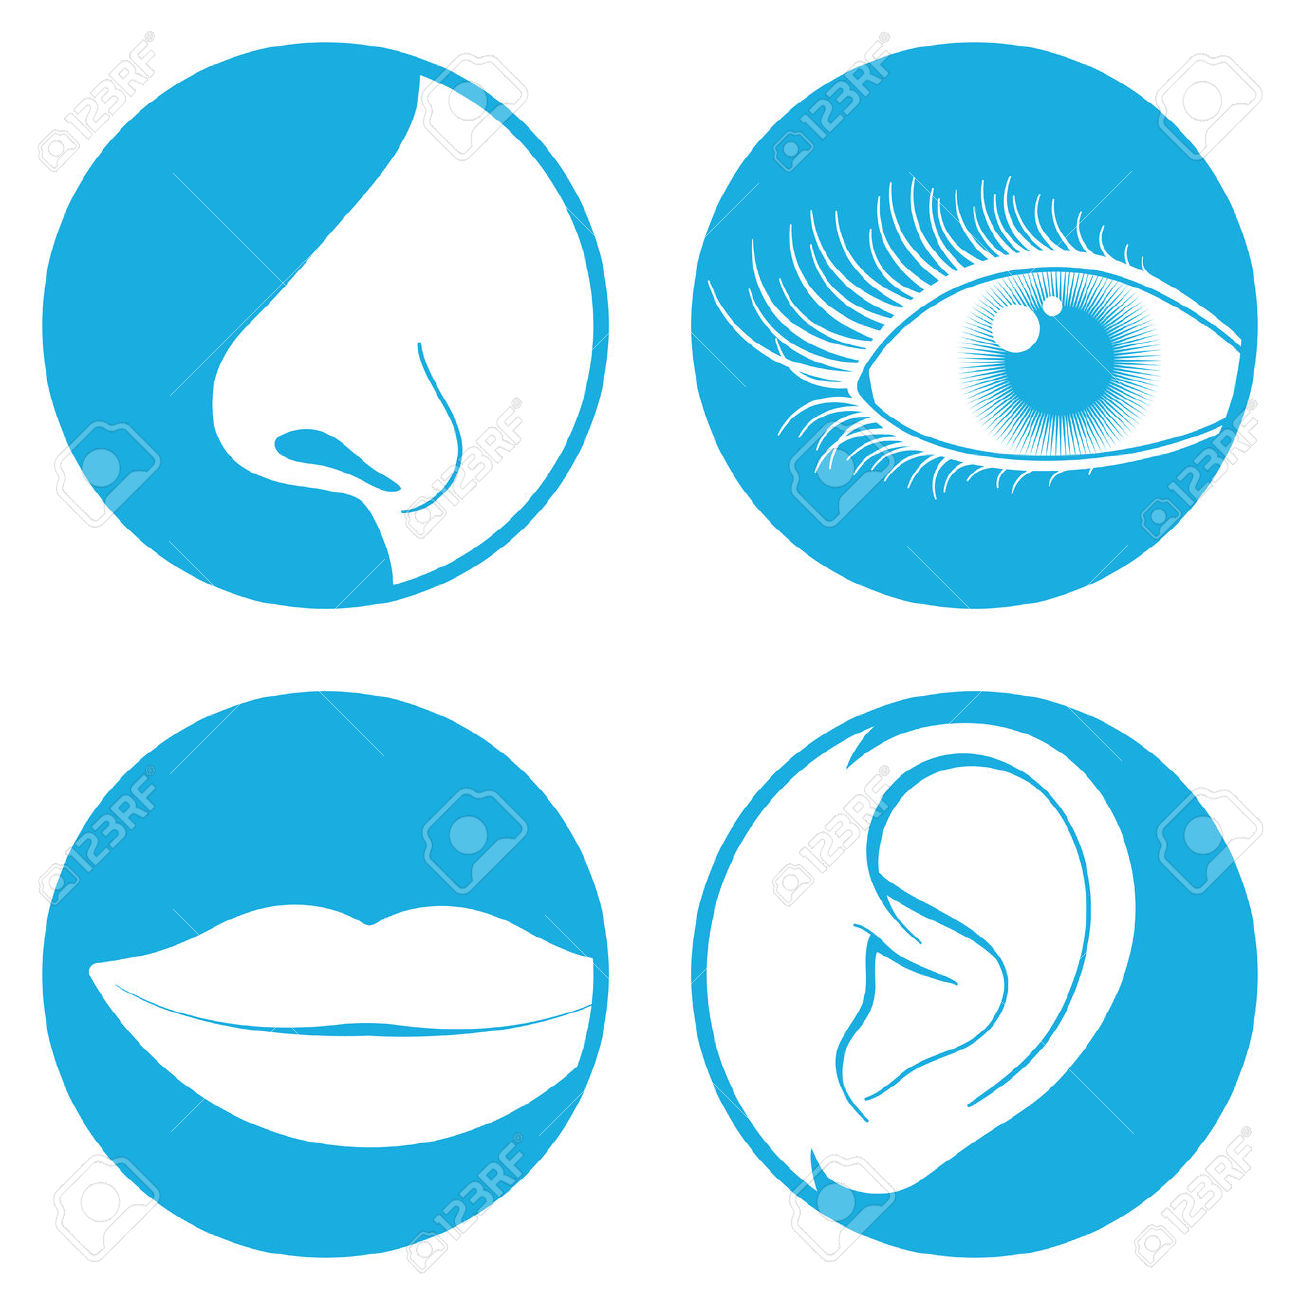 Nose, Eye, Mouth And Ear Pictograms Royalty Free Cliparts, Vectors.